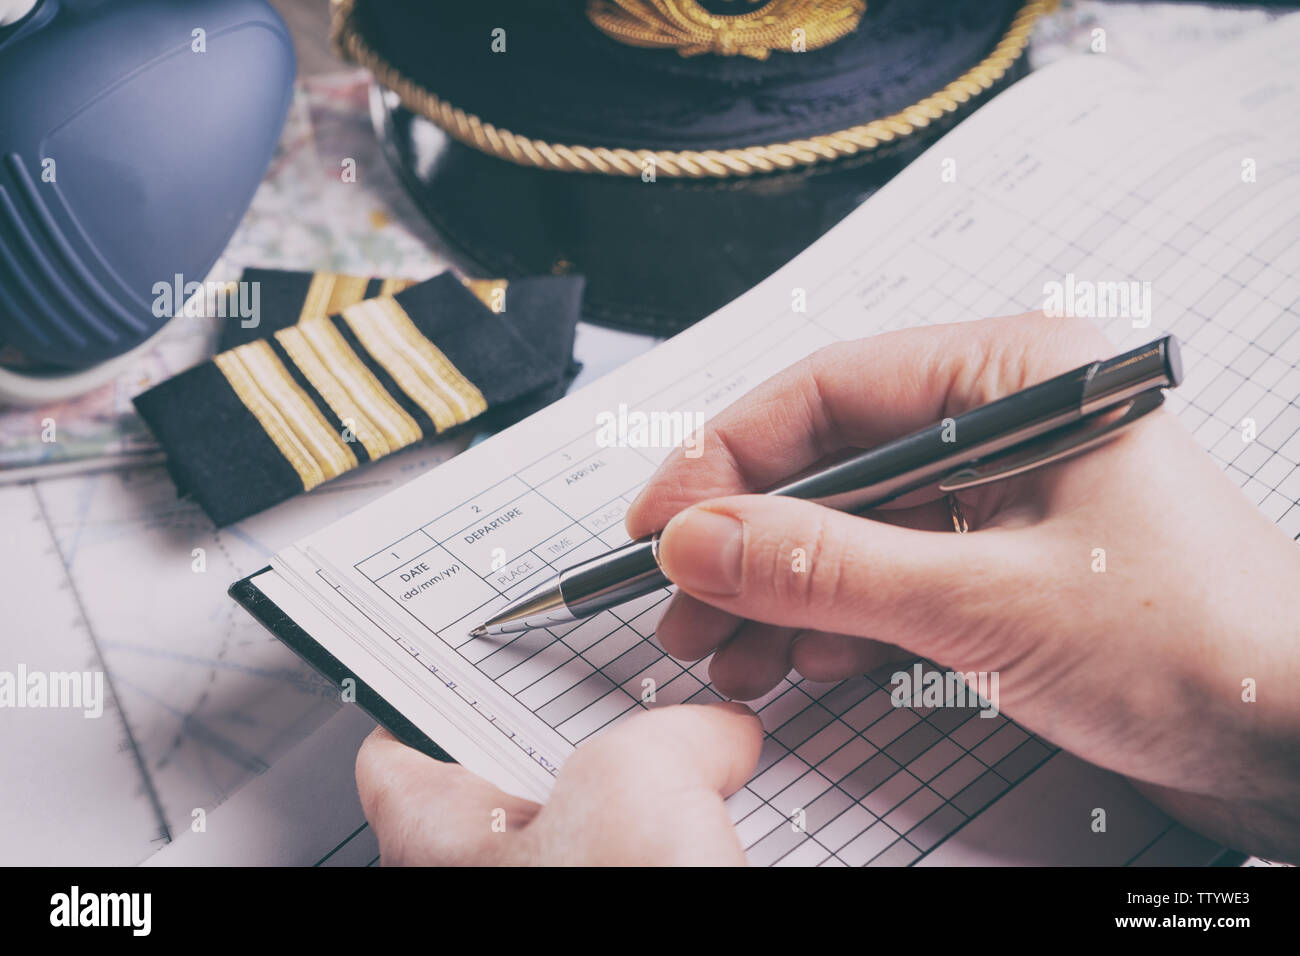 Pilot With Checklist Stock Photos & Pilot With Checklist Stock